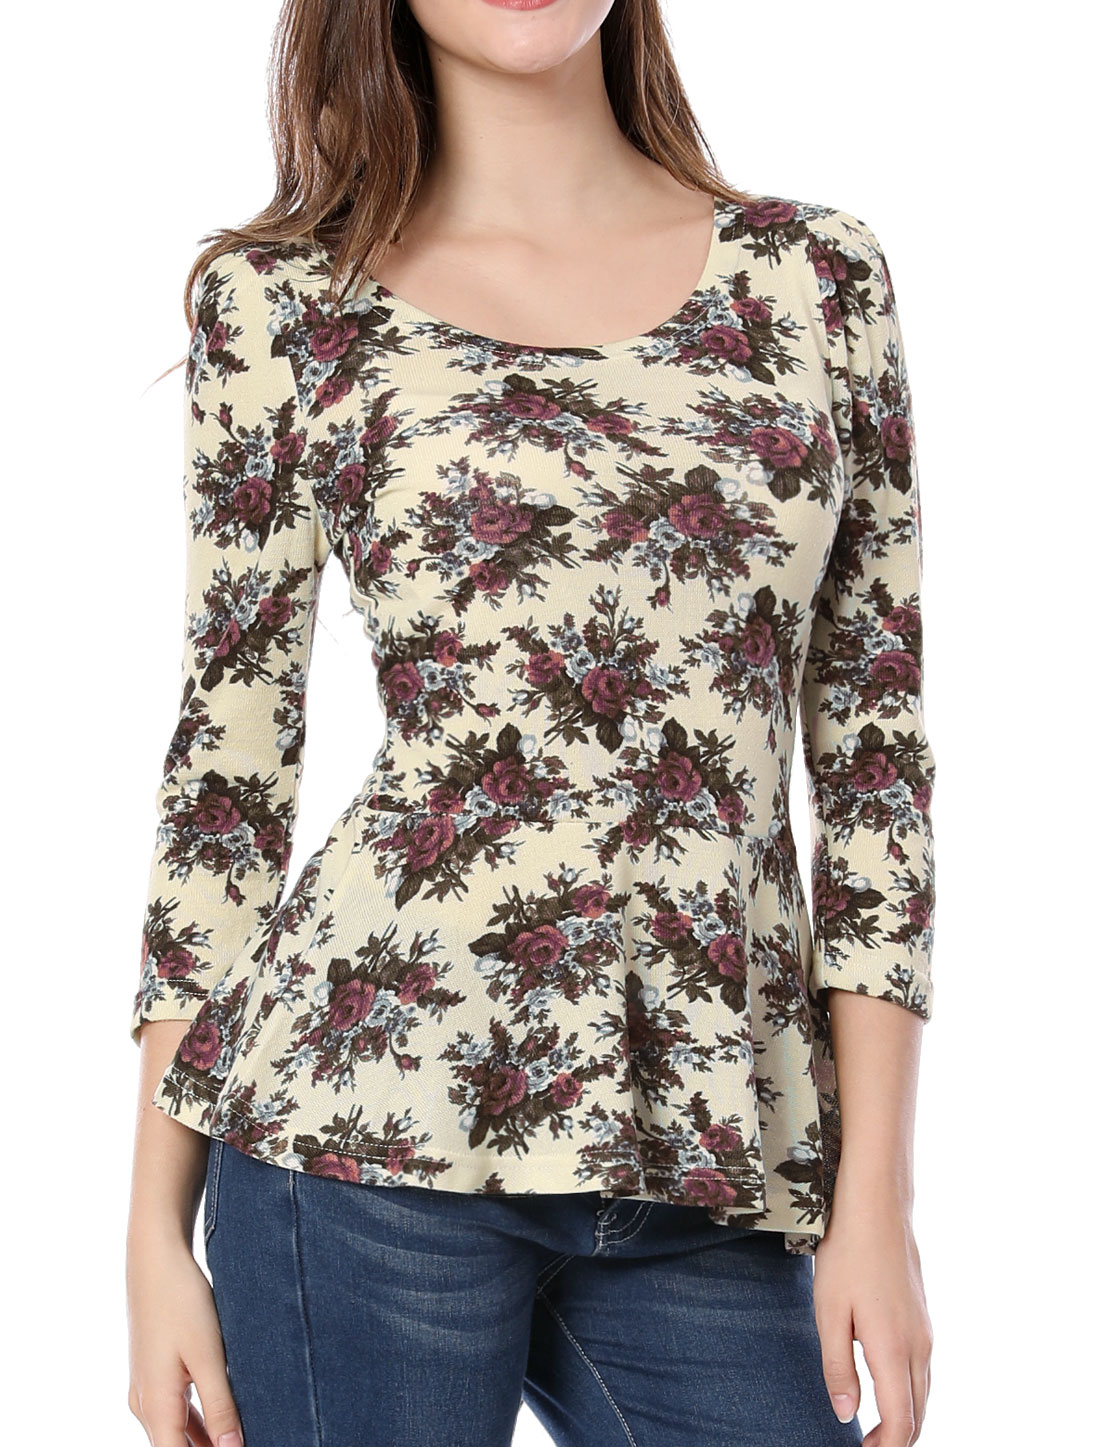 Women 3/4 Sleeve Floral Prints Pleated Hem Casual Tops Beige L